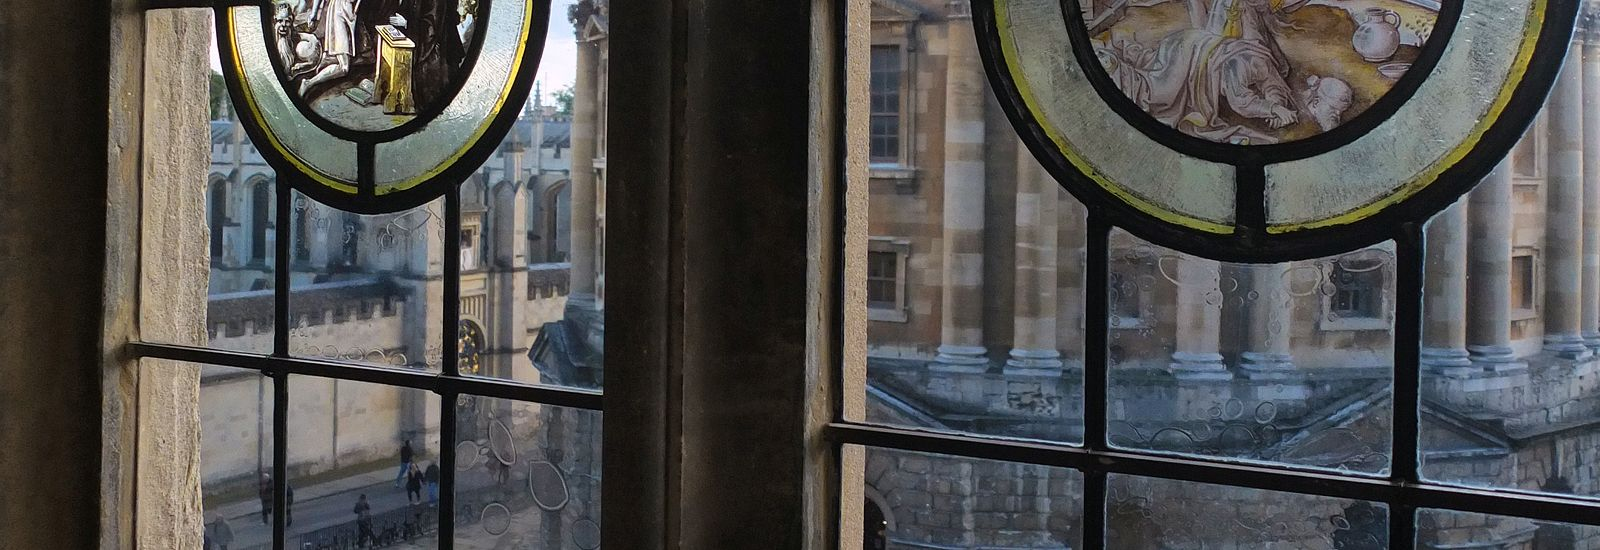 Close up of stain glass windows looking out over Radcliffe Square